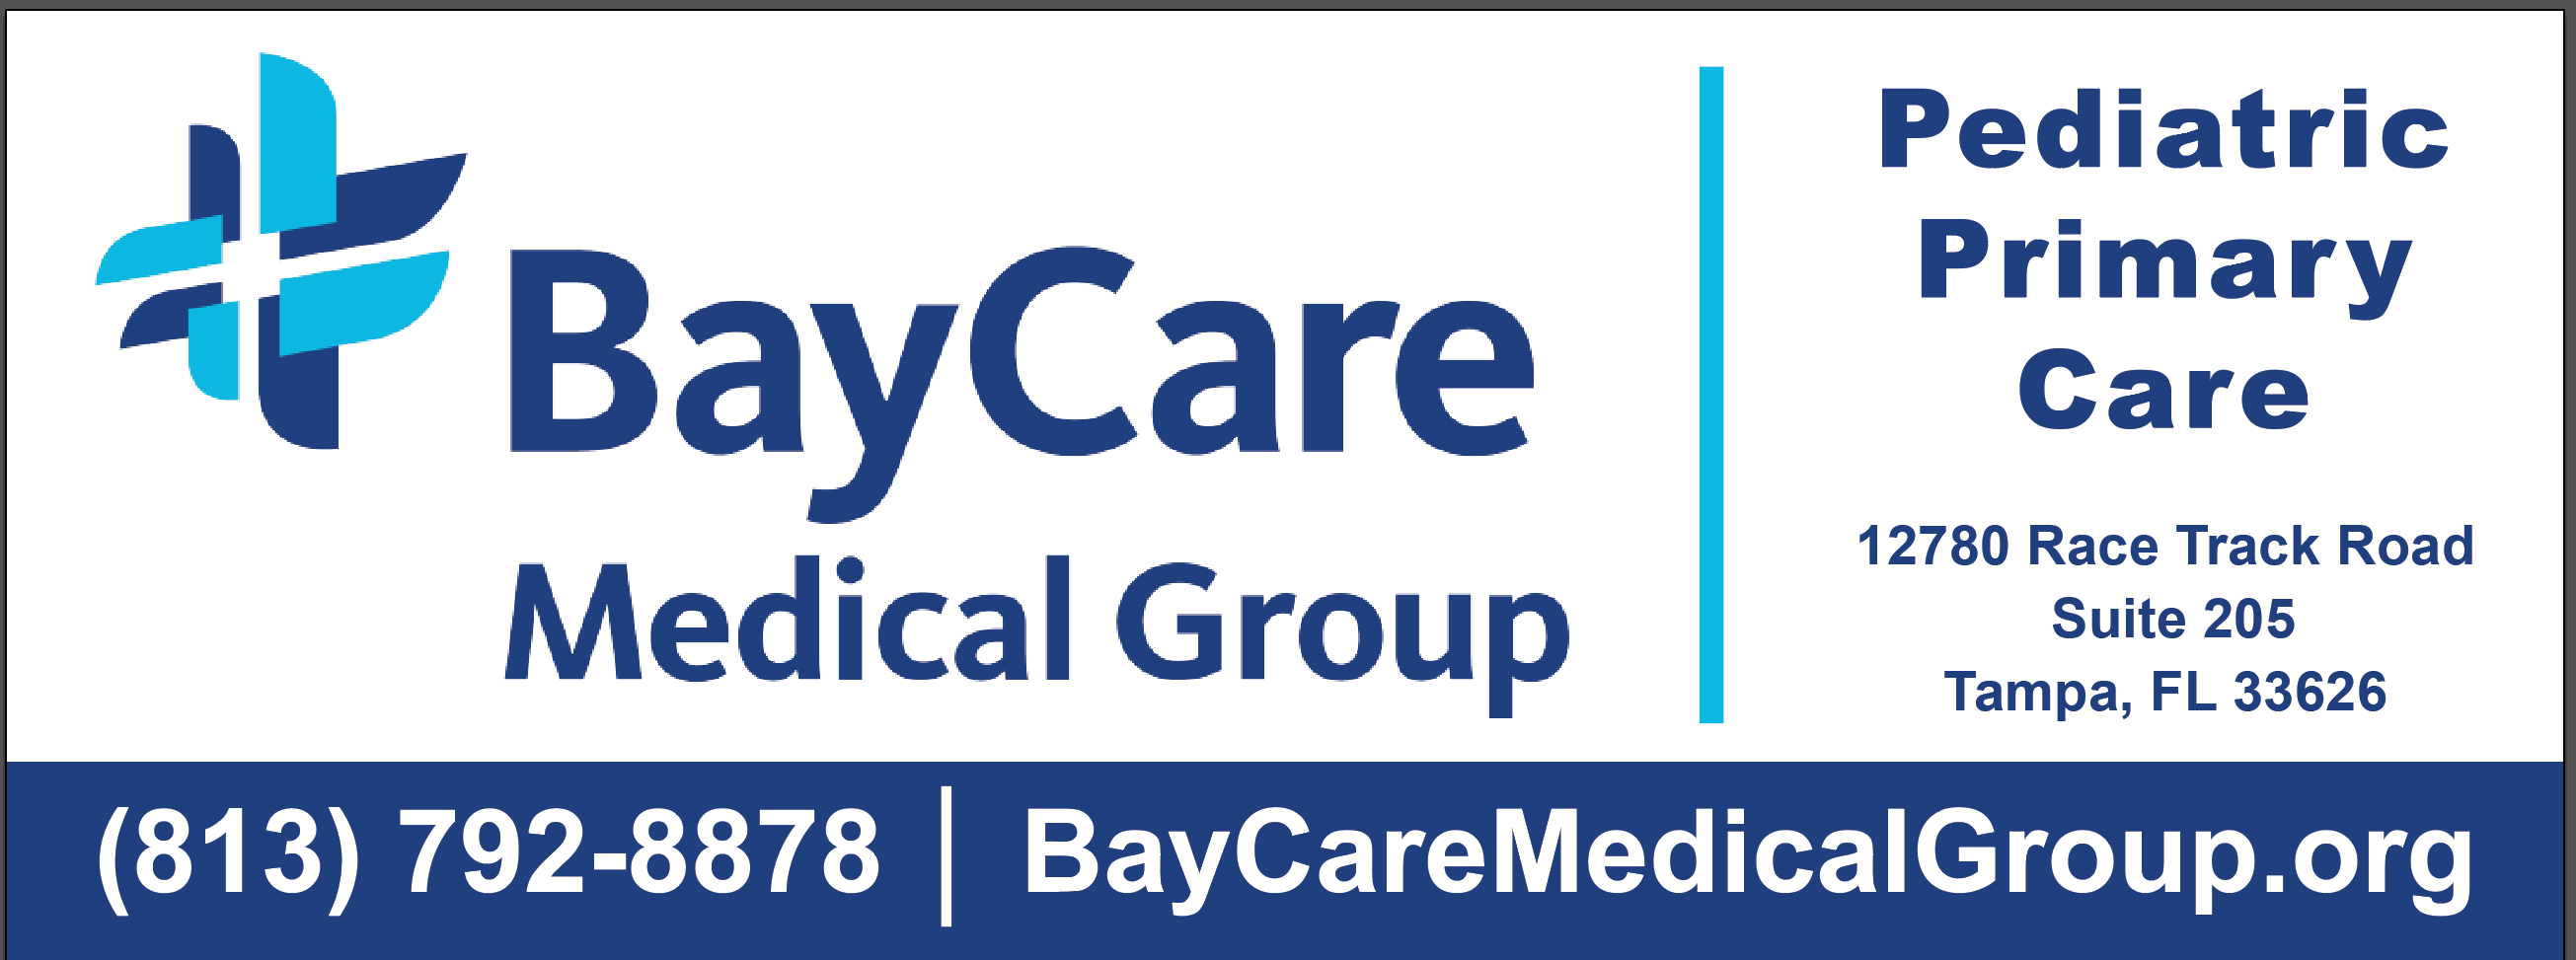 BayCare cropped